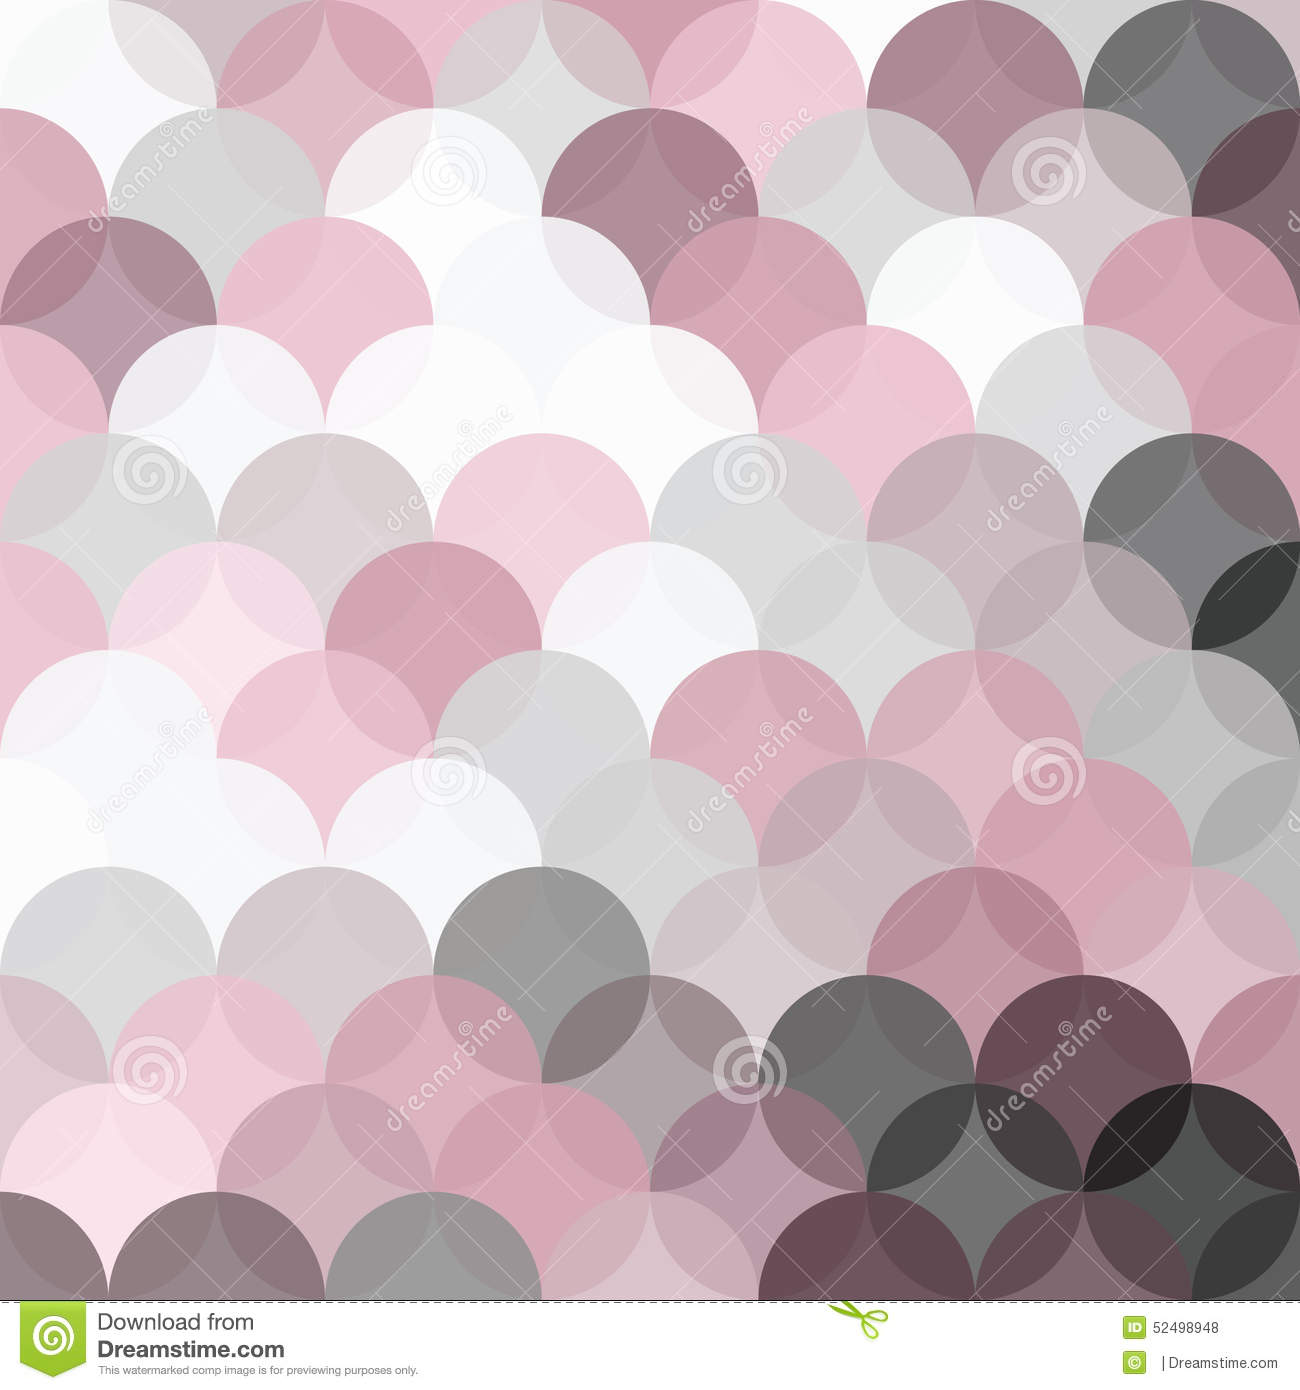 Background Circles Pattern With Transparent Pink And Grey. Green Velvet Couch. Pull Out Spice Cabinet. Shipping Container Houses. Rolled Arm Bench. Sw 7005. British Colonial Decor. Victorian Living Room Furniture. Contemporary Kitchens